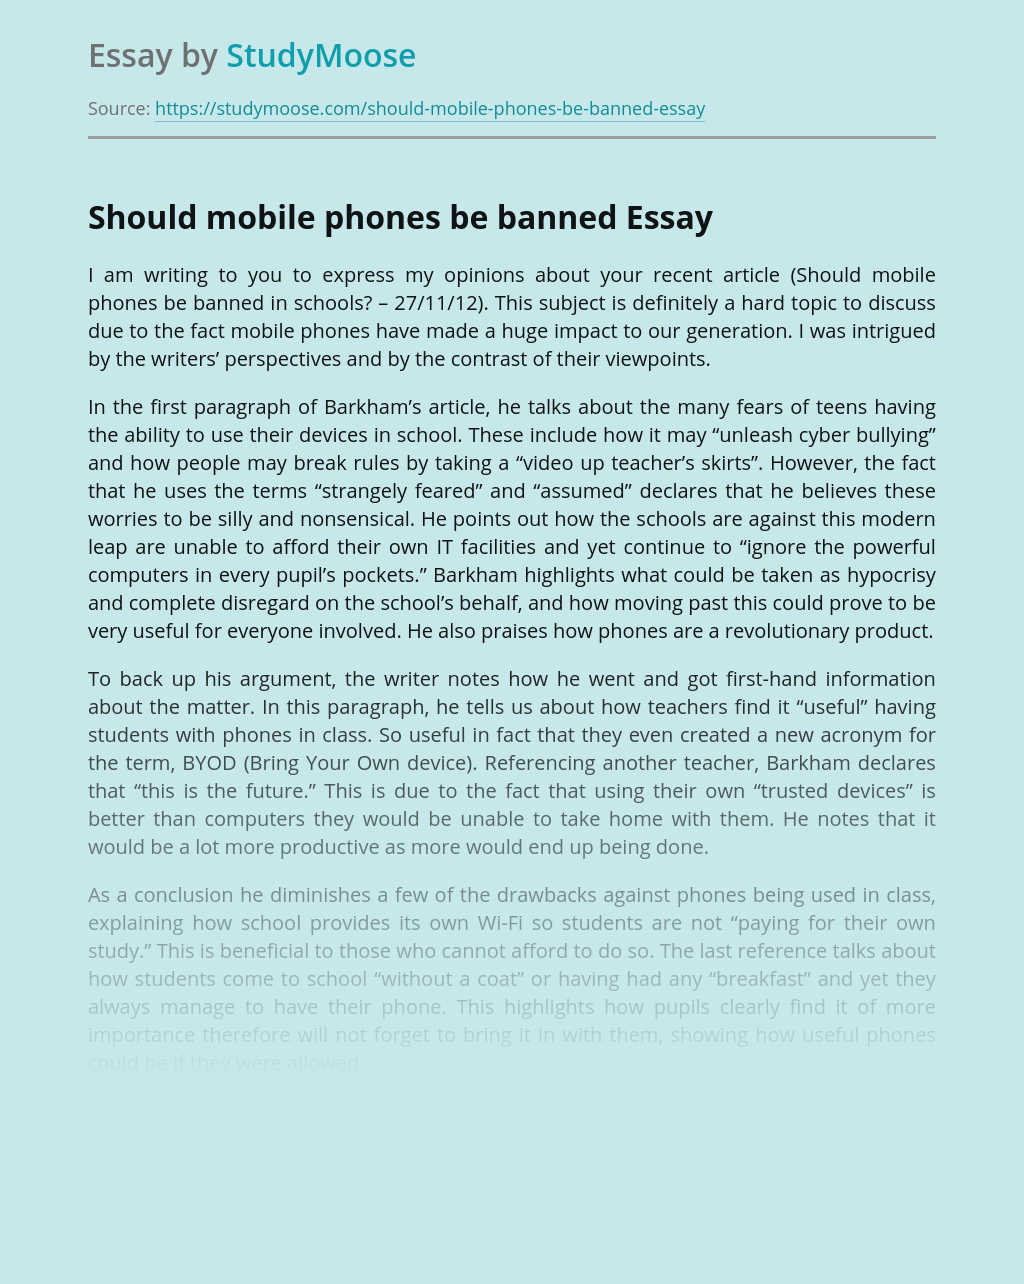 Should mobile phones be banned